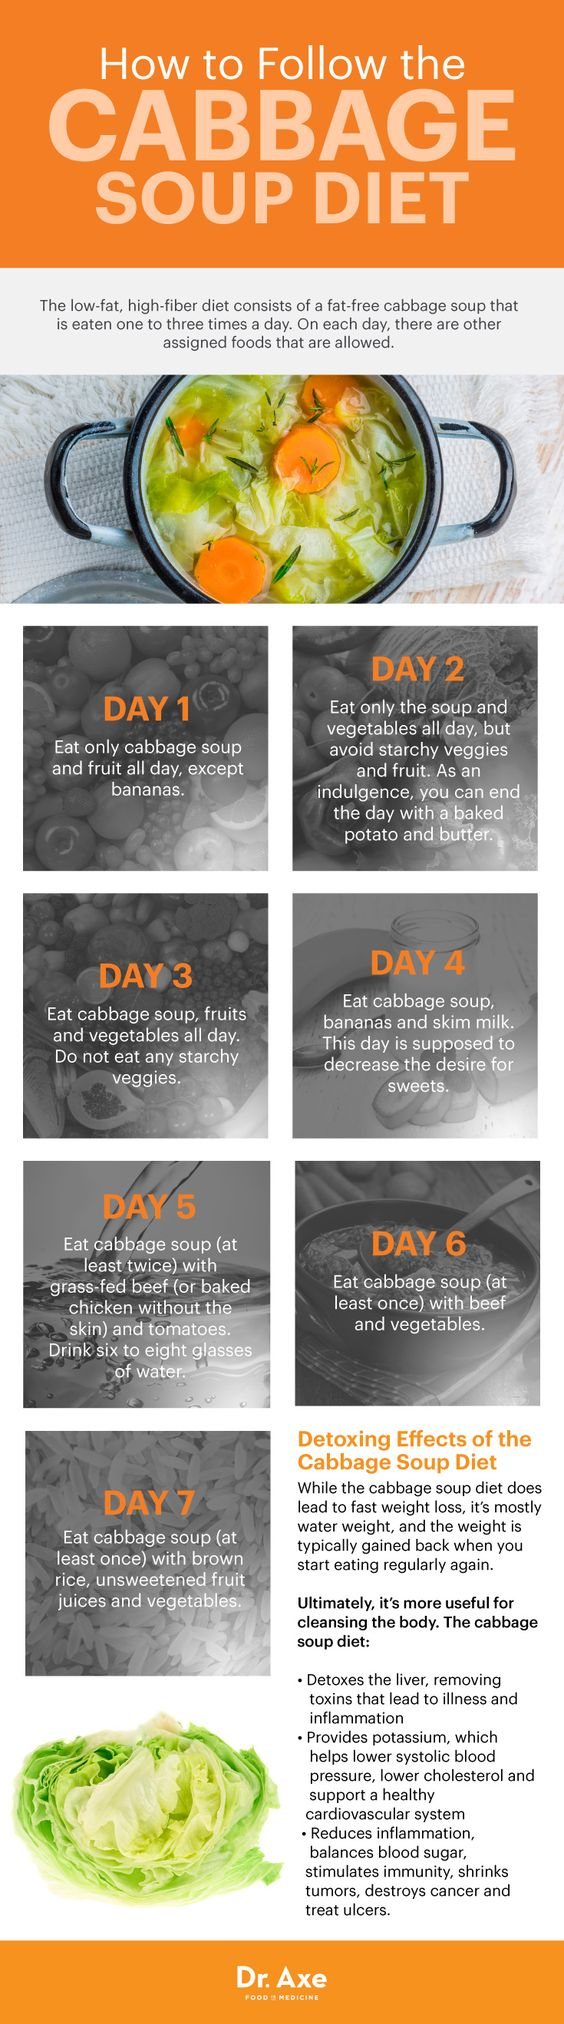 How to follow the cabbage soup diet - Dr. Axe http://www.draxe.com #health #holistic #natural